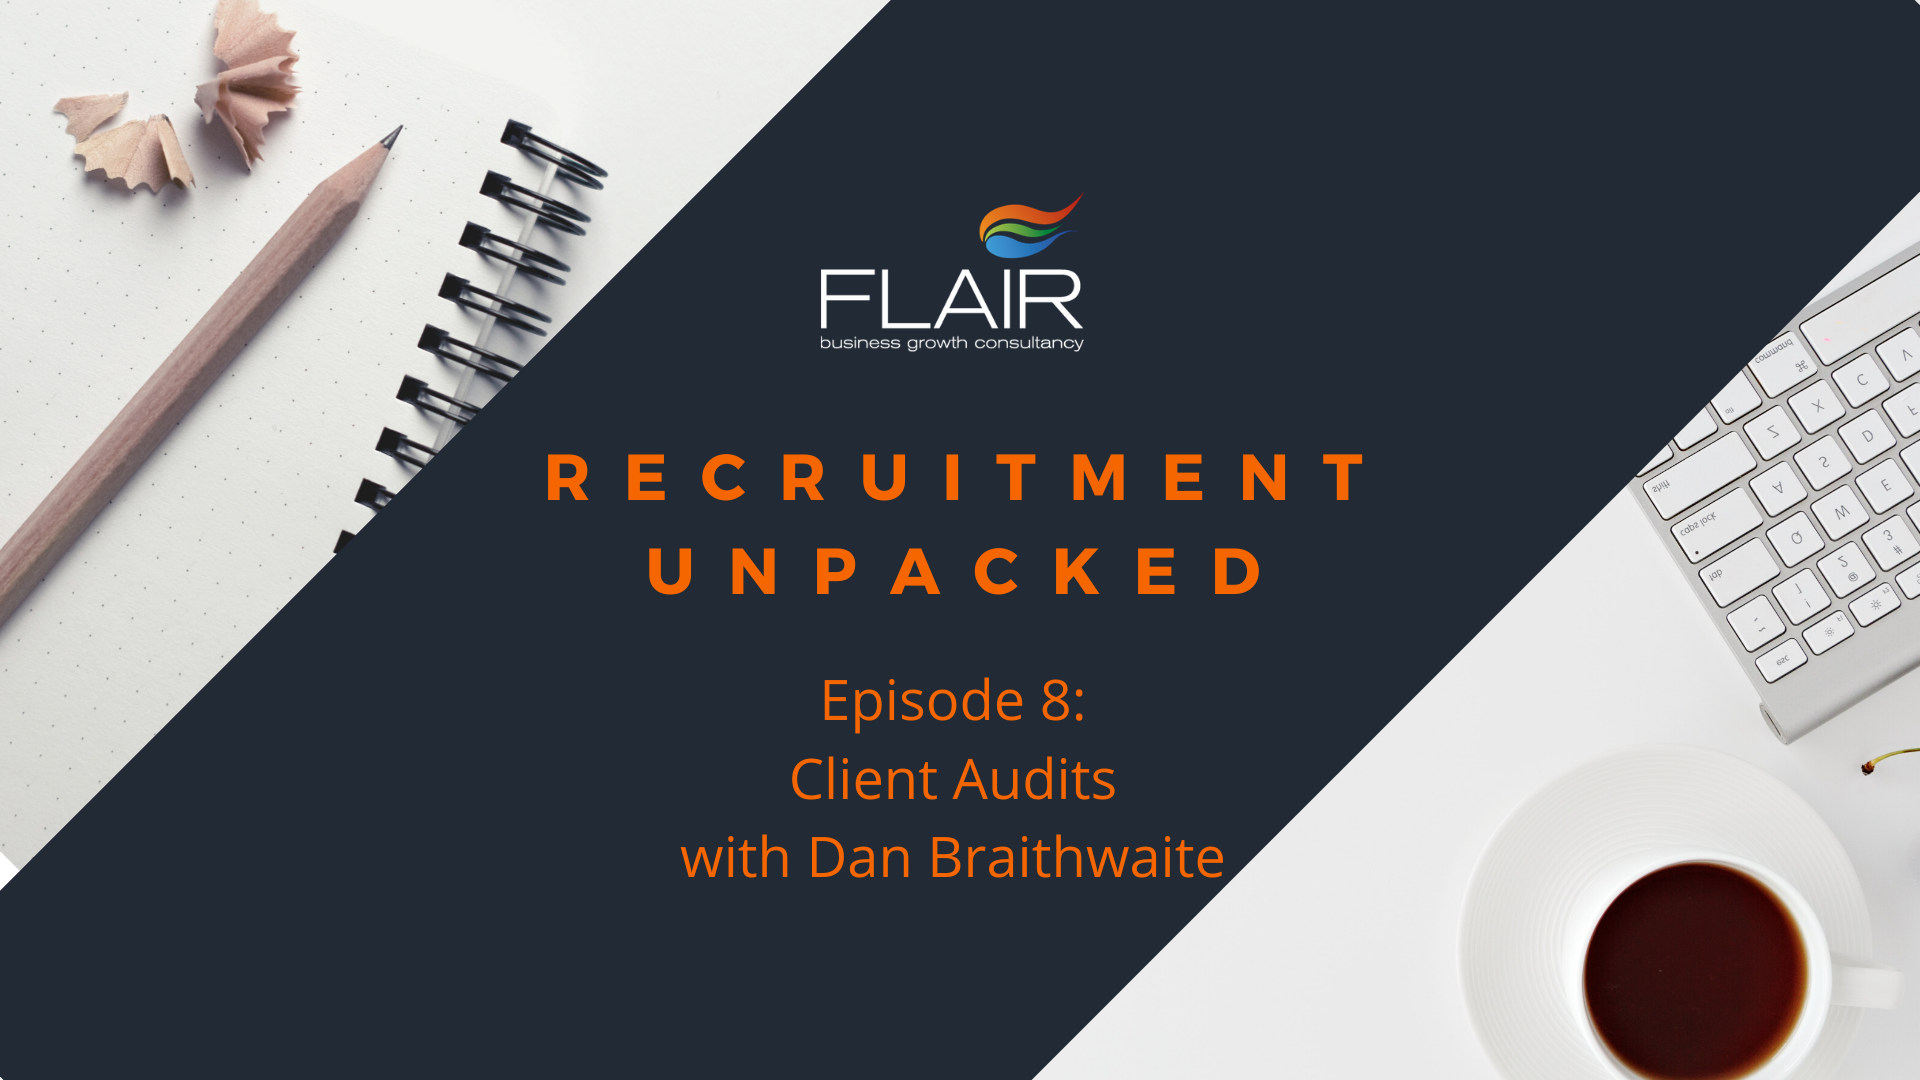 REcruitment Unpacked: Episode 8 - Client Audits with Dan Braithwaite